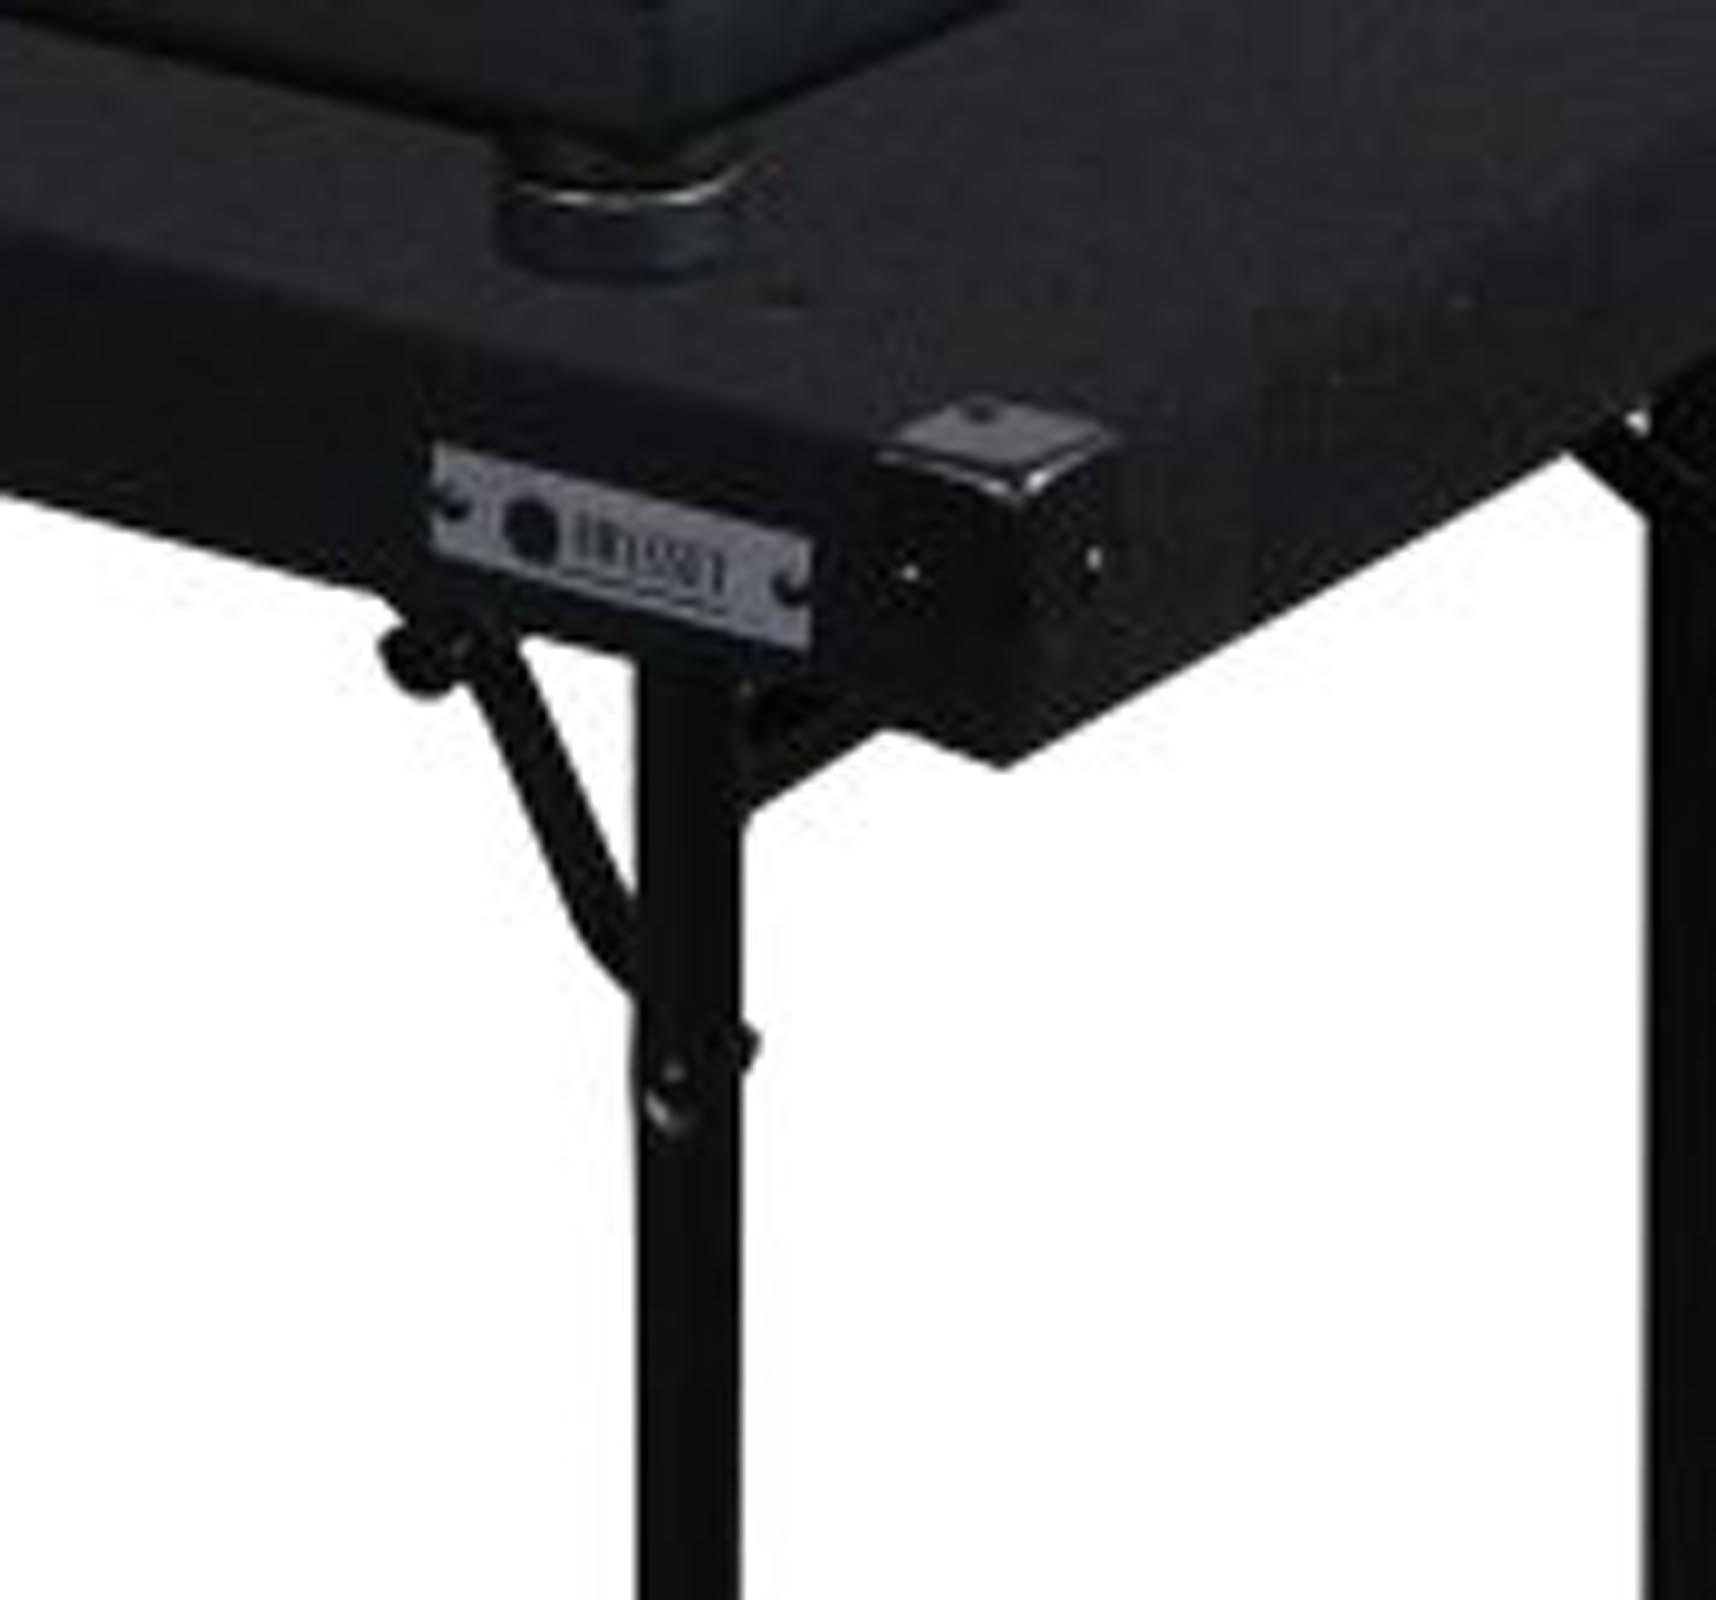 ODYSSEY CTBC2060 Carpeted Portable Pro DJ Work Table w Adjustable